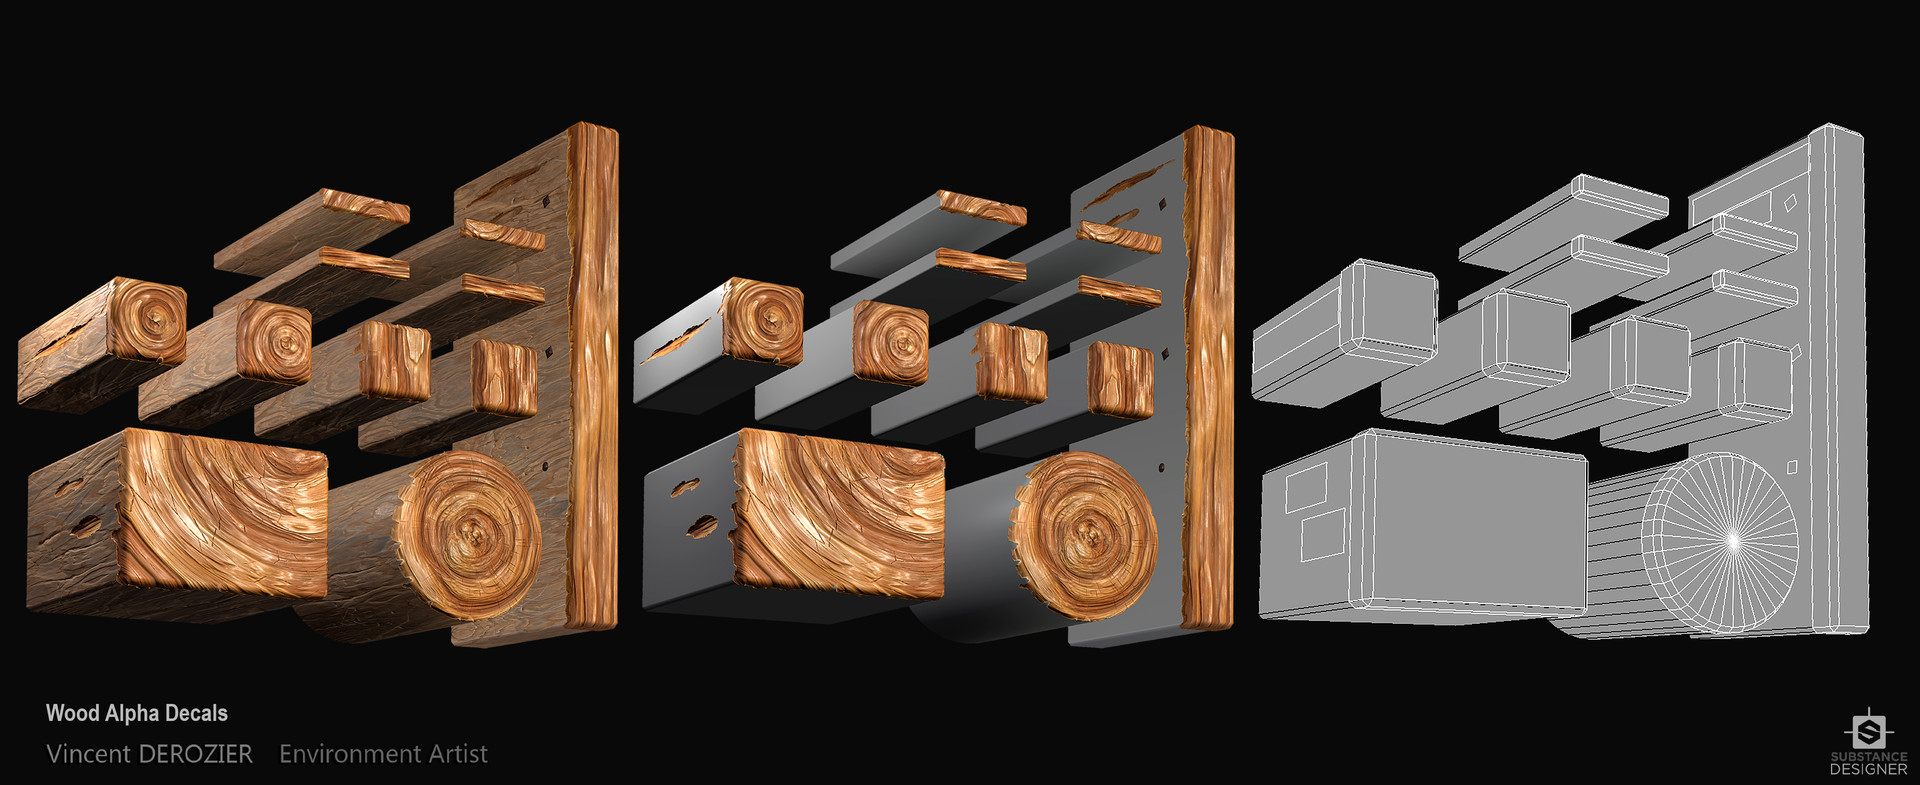 Vincent derozier wood decals render01